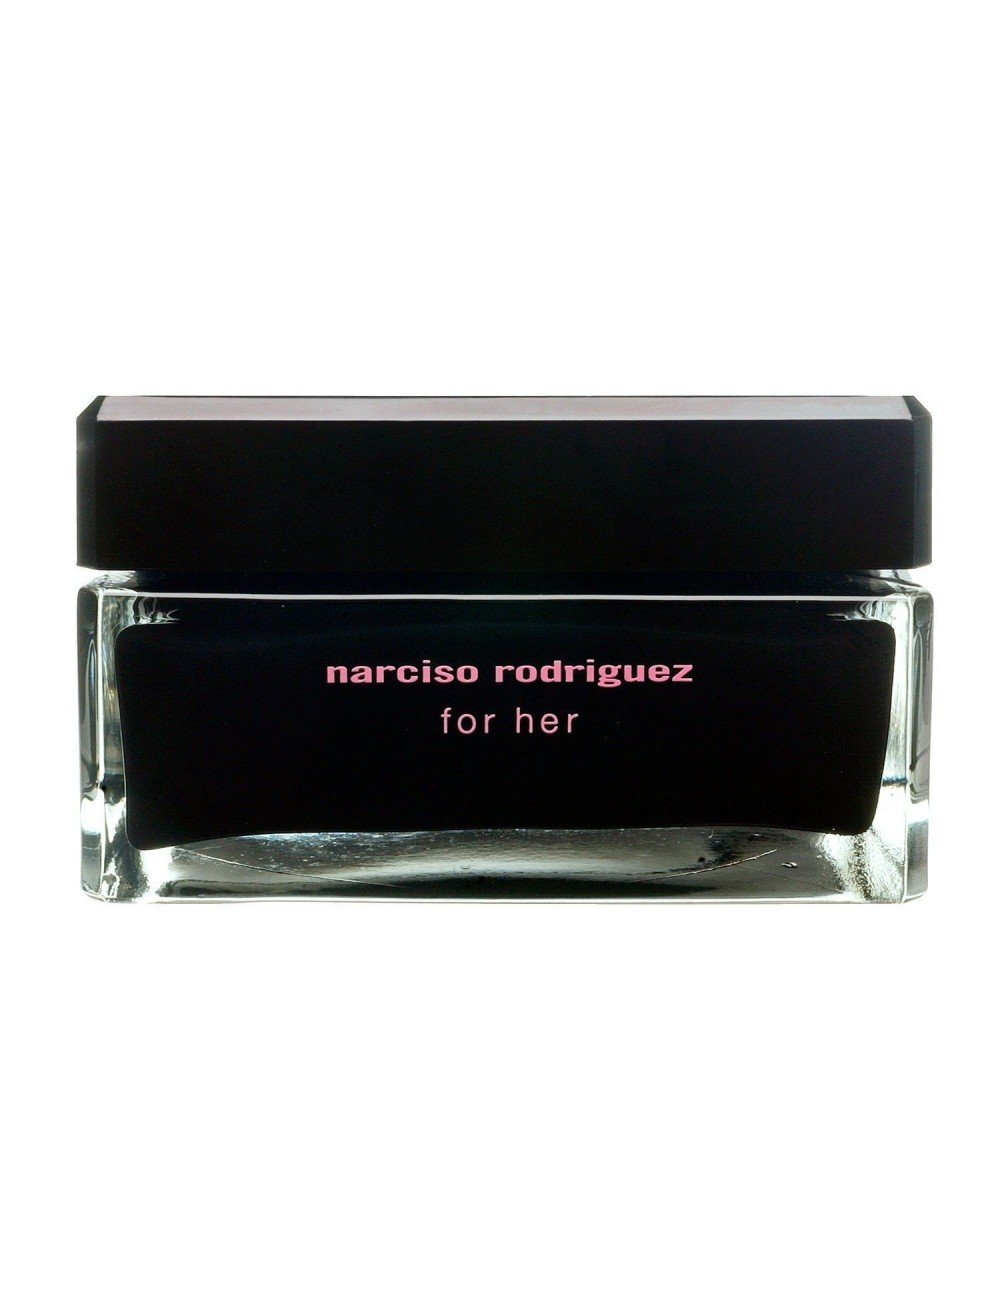 NARCISO RODRIGUEZ FOR HER BODY CREMA 150ML